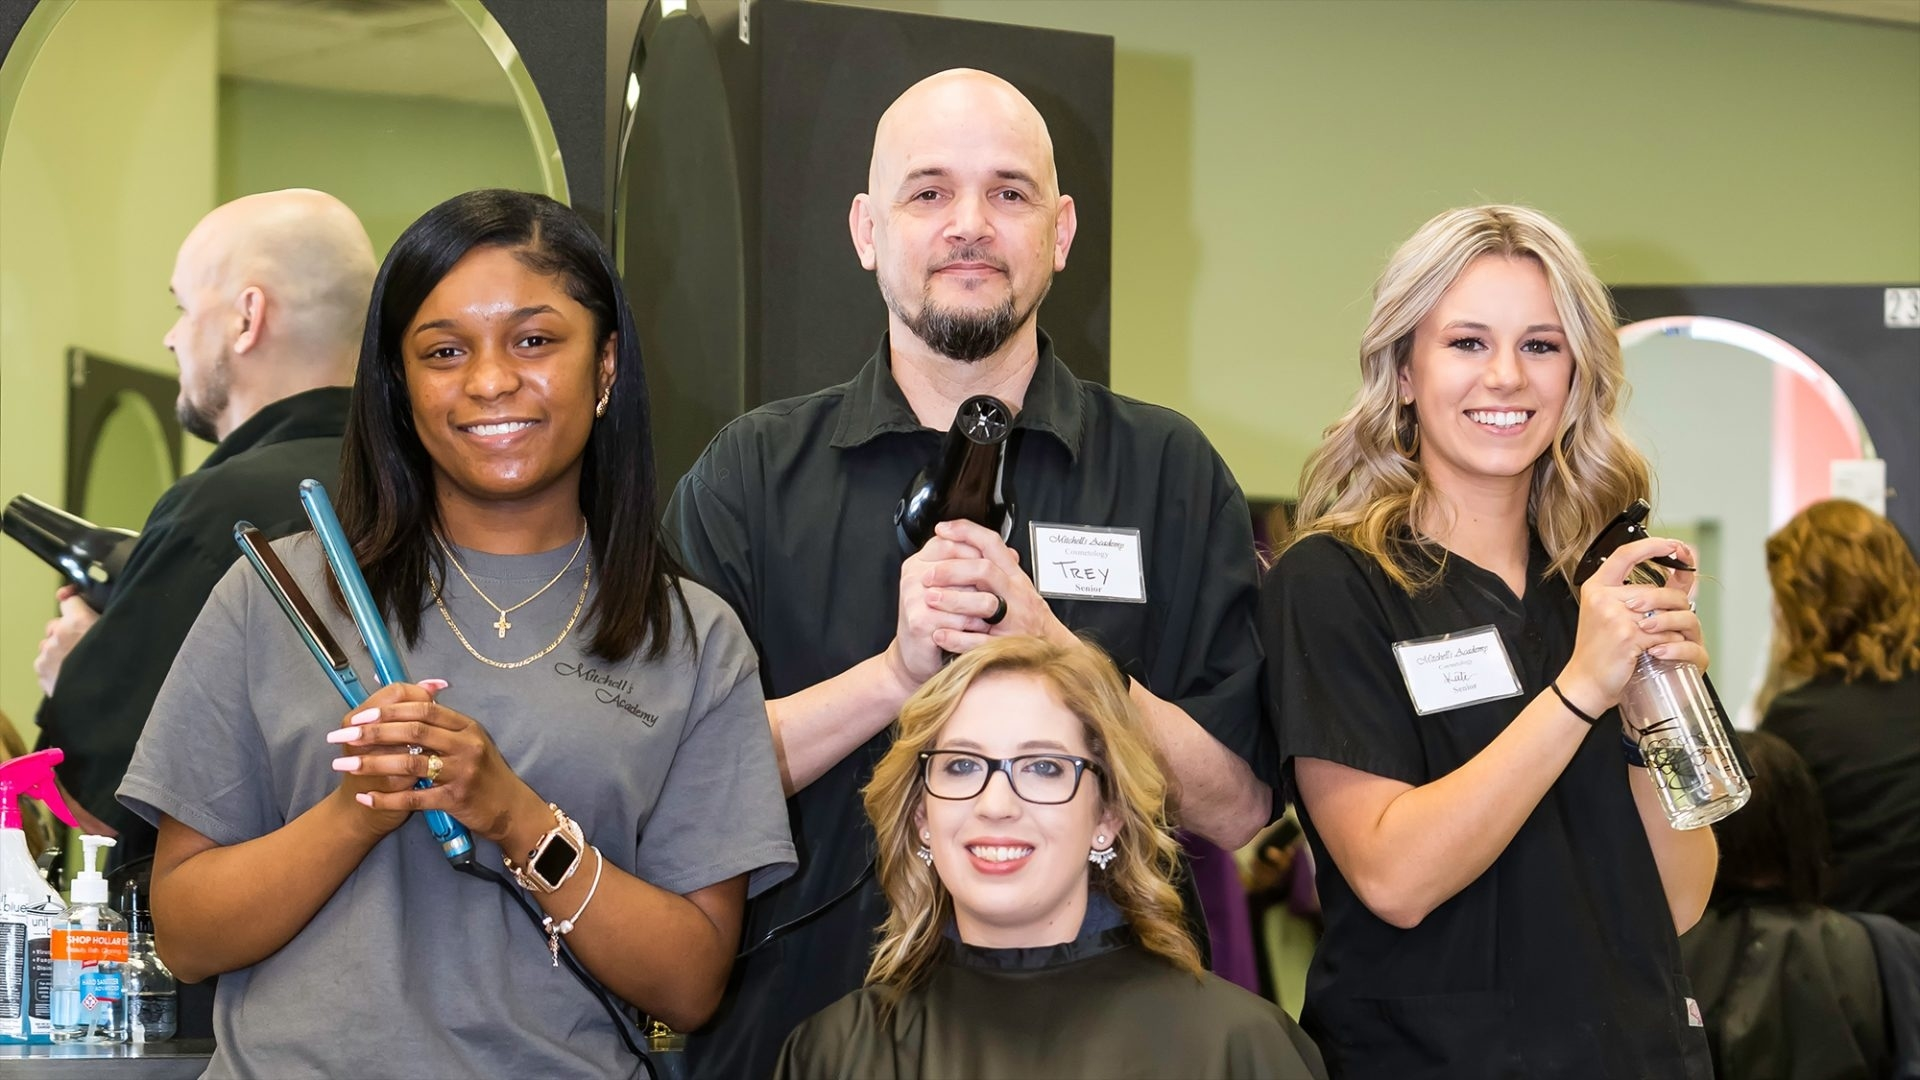 Pcc To Take Ownership Of Mitchell's Hairstyling Academy - Pitt intended for Mitchell Hair Styling Academy